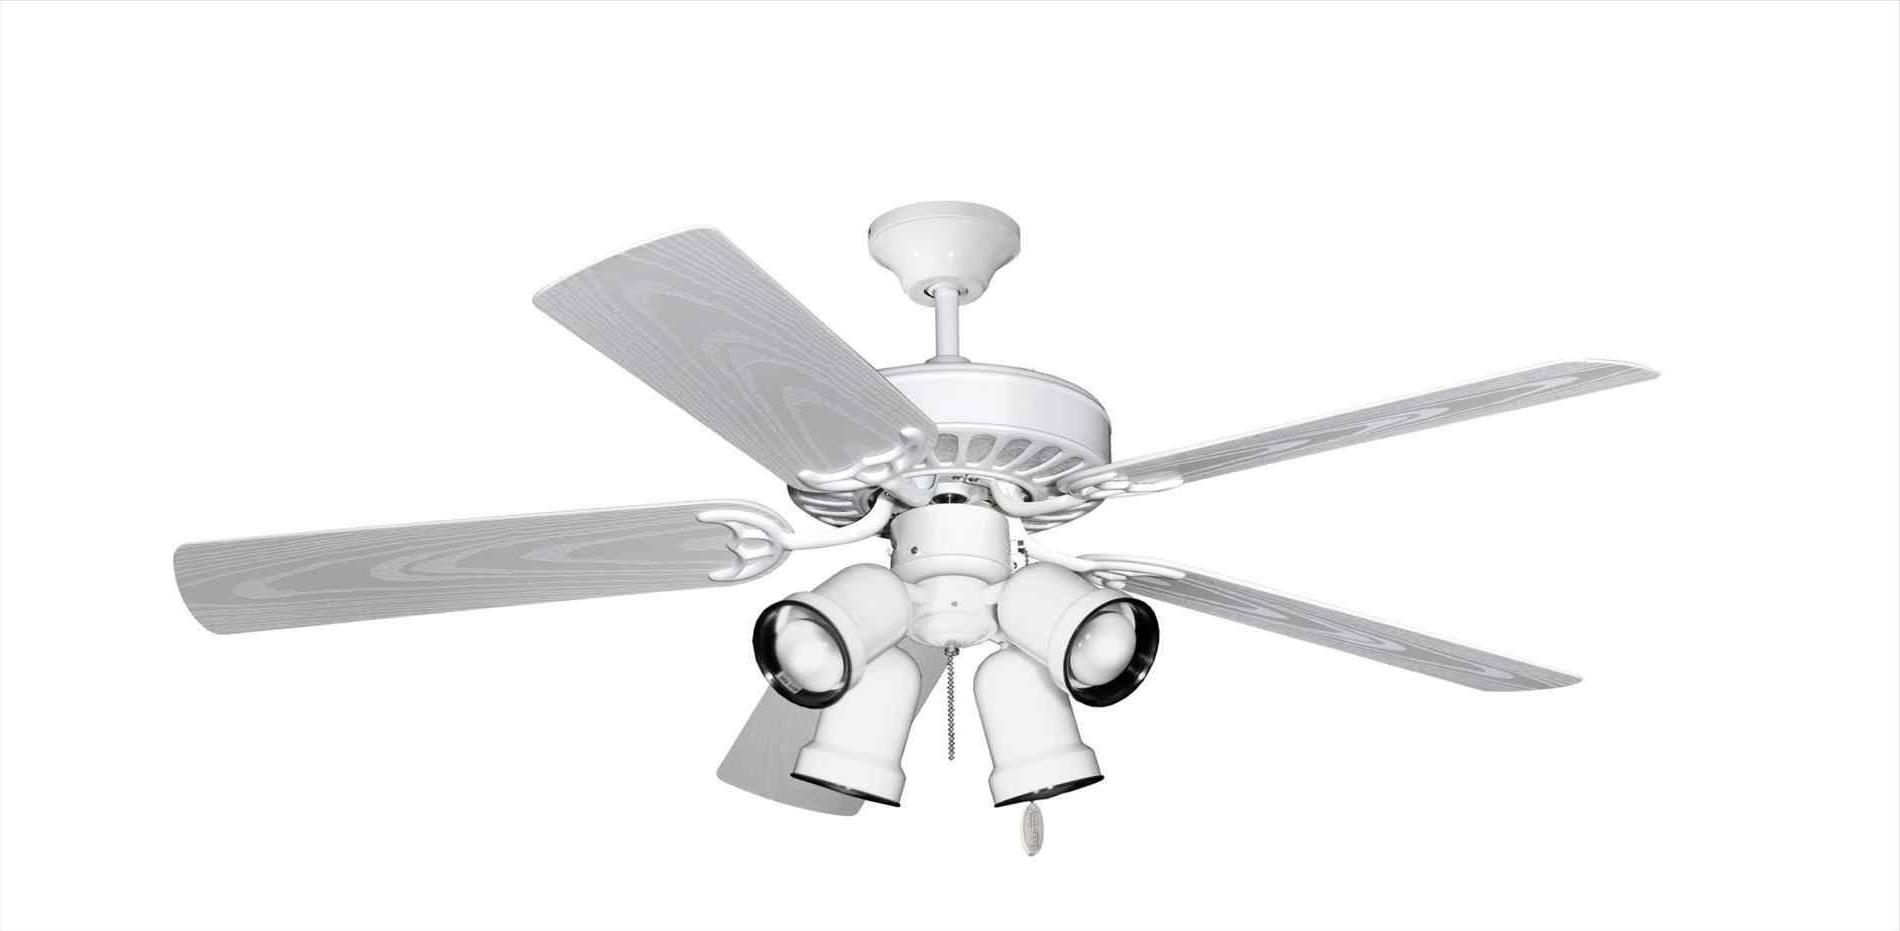 Most Current High Cfm Ceiling Fan – Pixball In Outdoor Ceiling Fans With High Cfm (View 17 of 20)